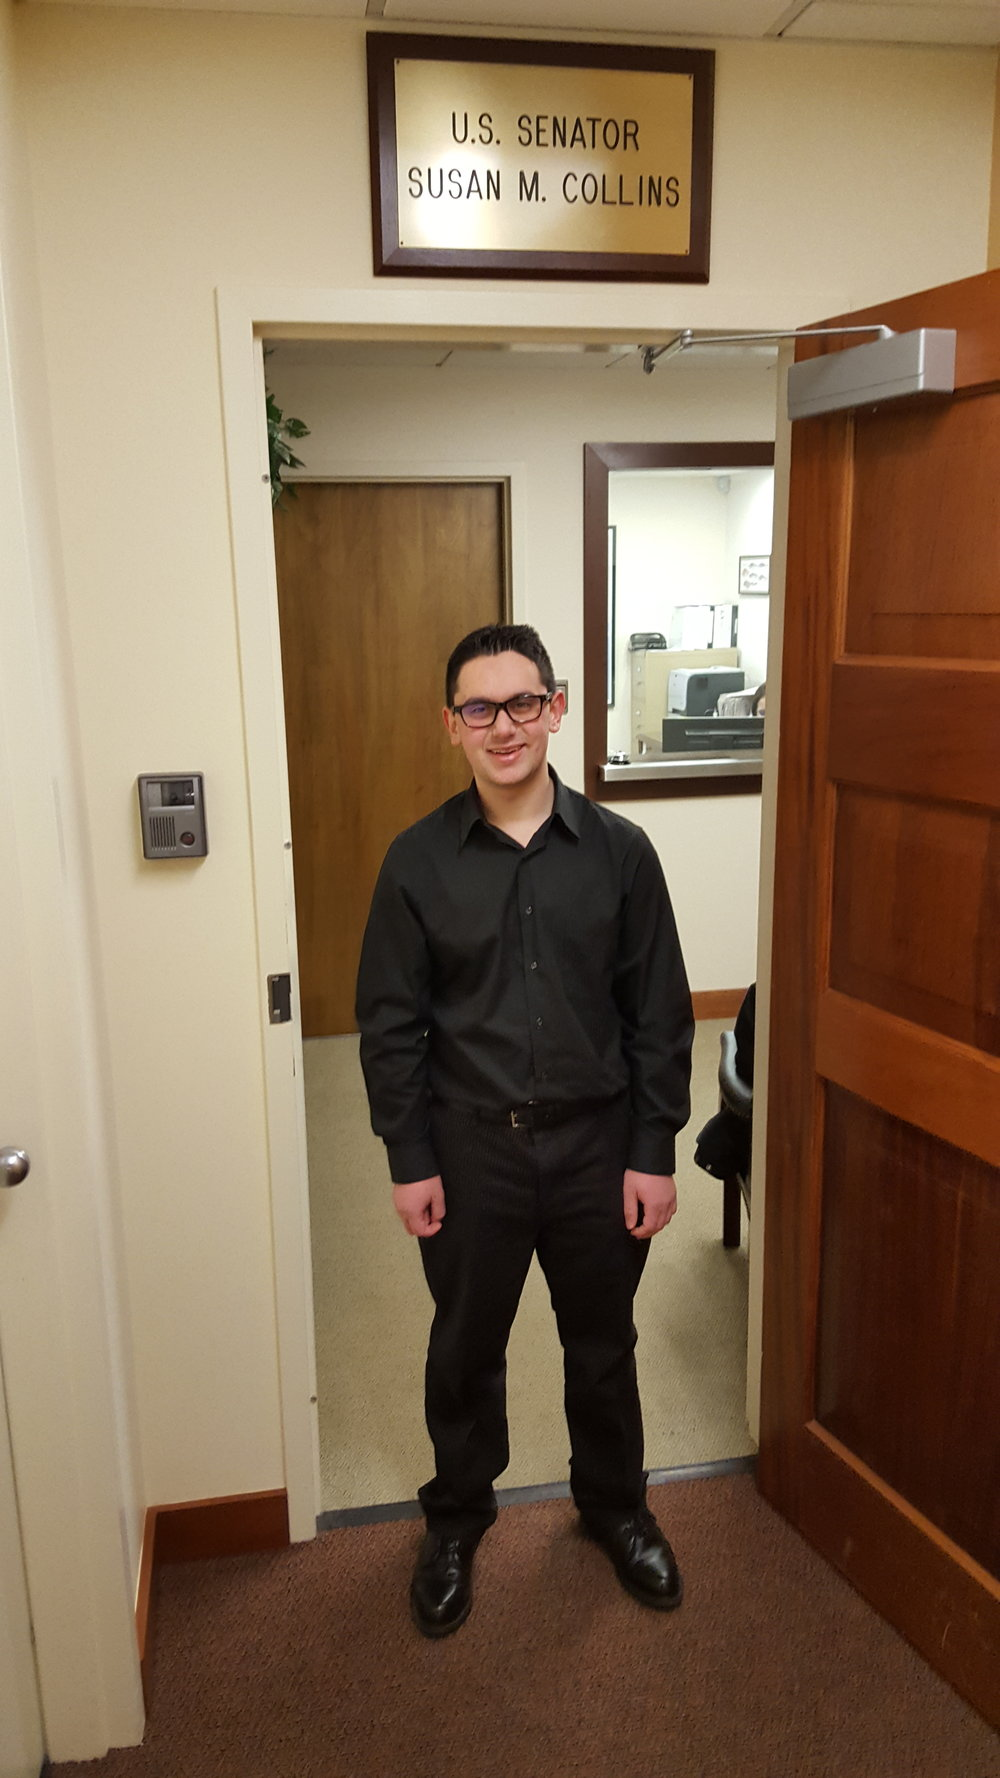 David Oken, class of 2018, has spent his Flex Friday year researching and shadowing a variety of career paths.